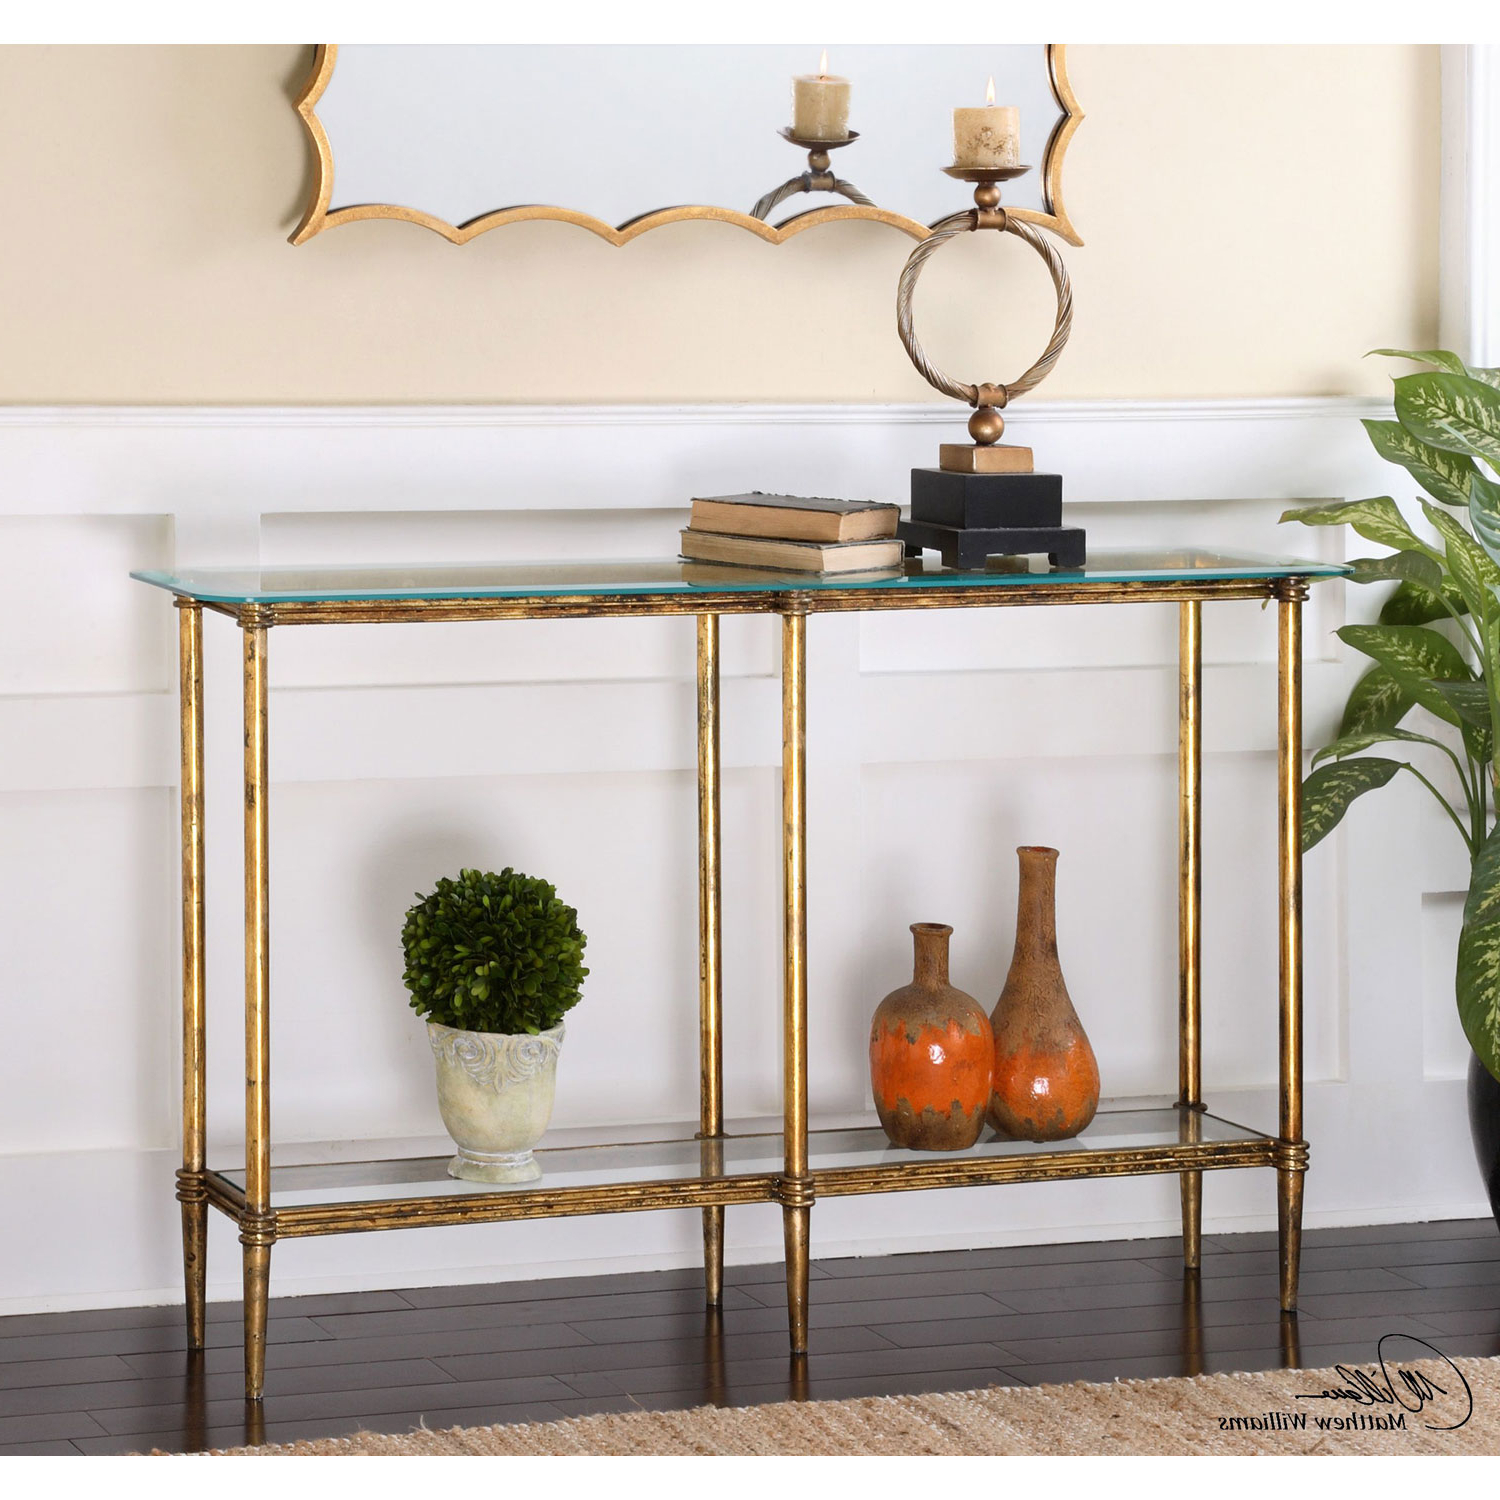 Uttermost Elenio Bright Gold Console Table 24421 | Bellacor Pertaining To Jacque Console Tables (Gallery 10 of 20)